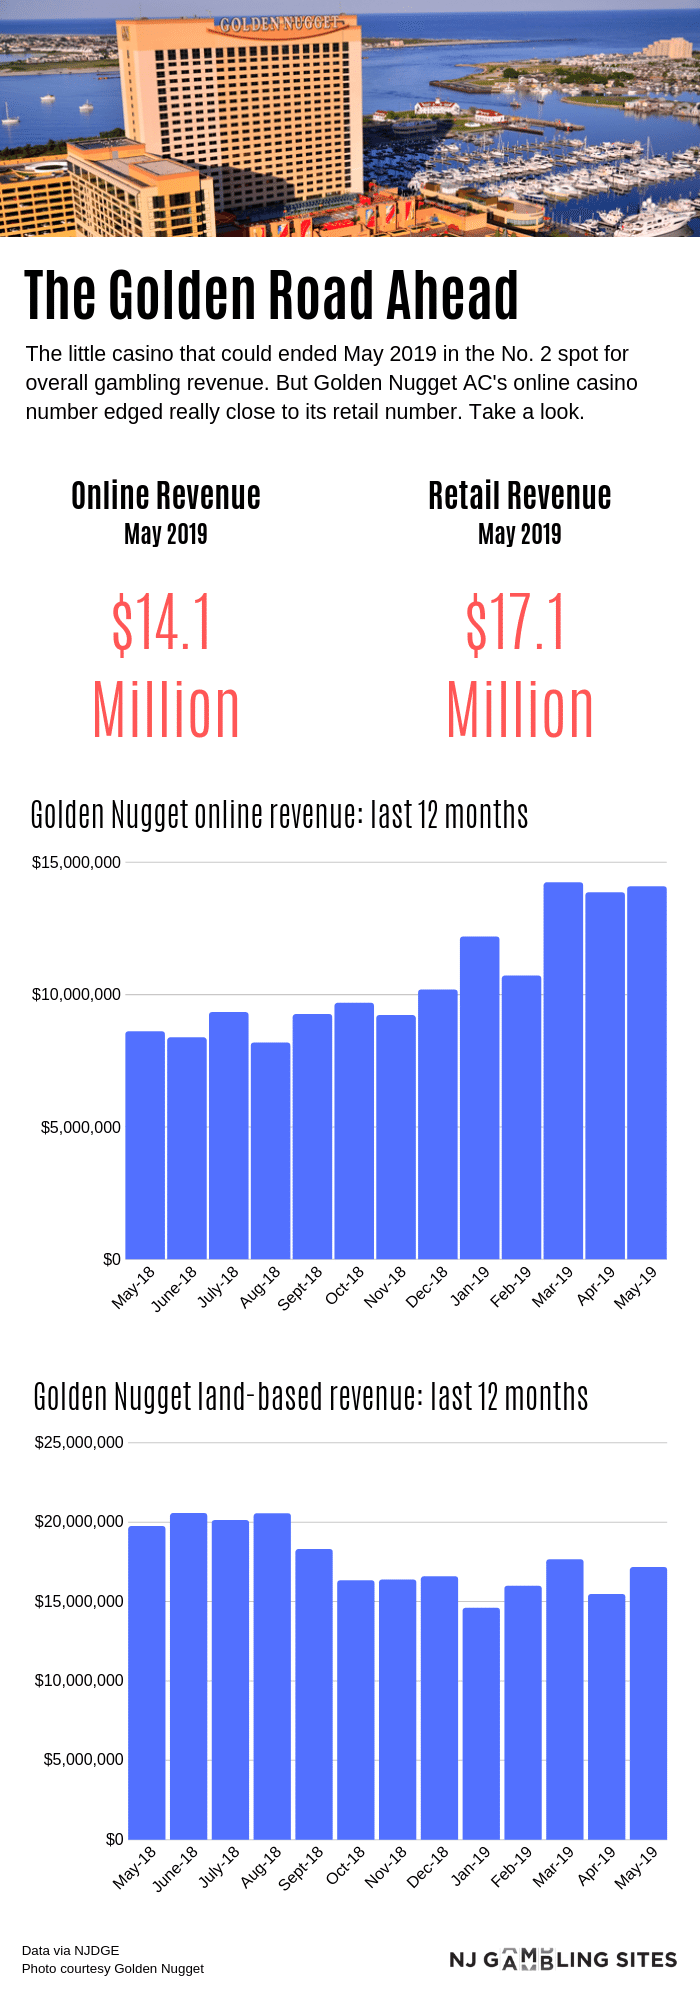 Golden Nugget online vs retail revenue